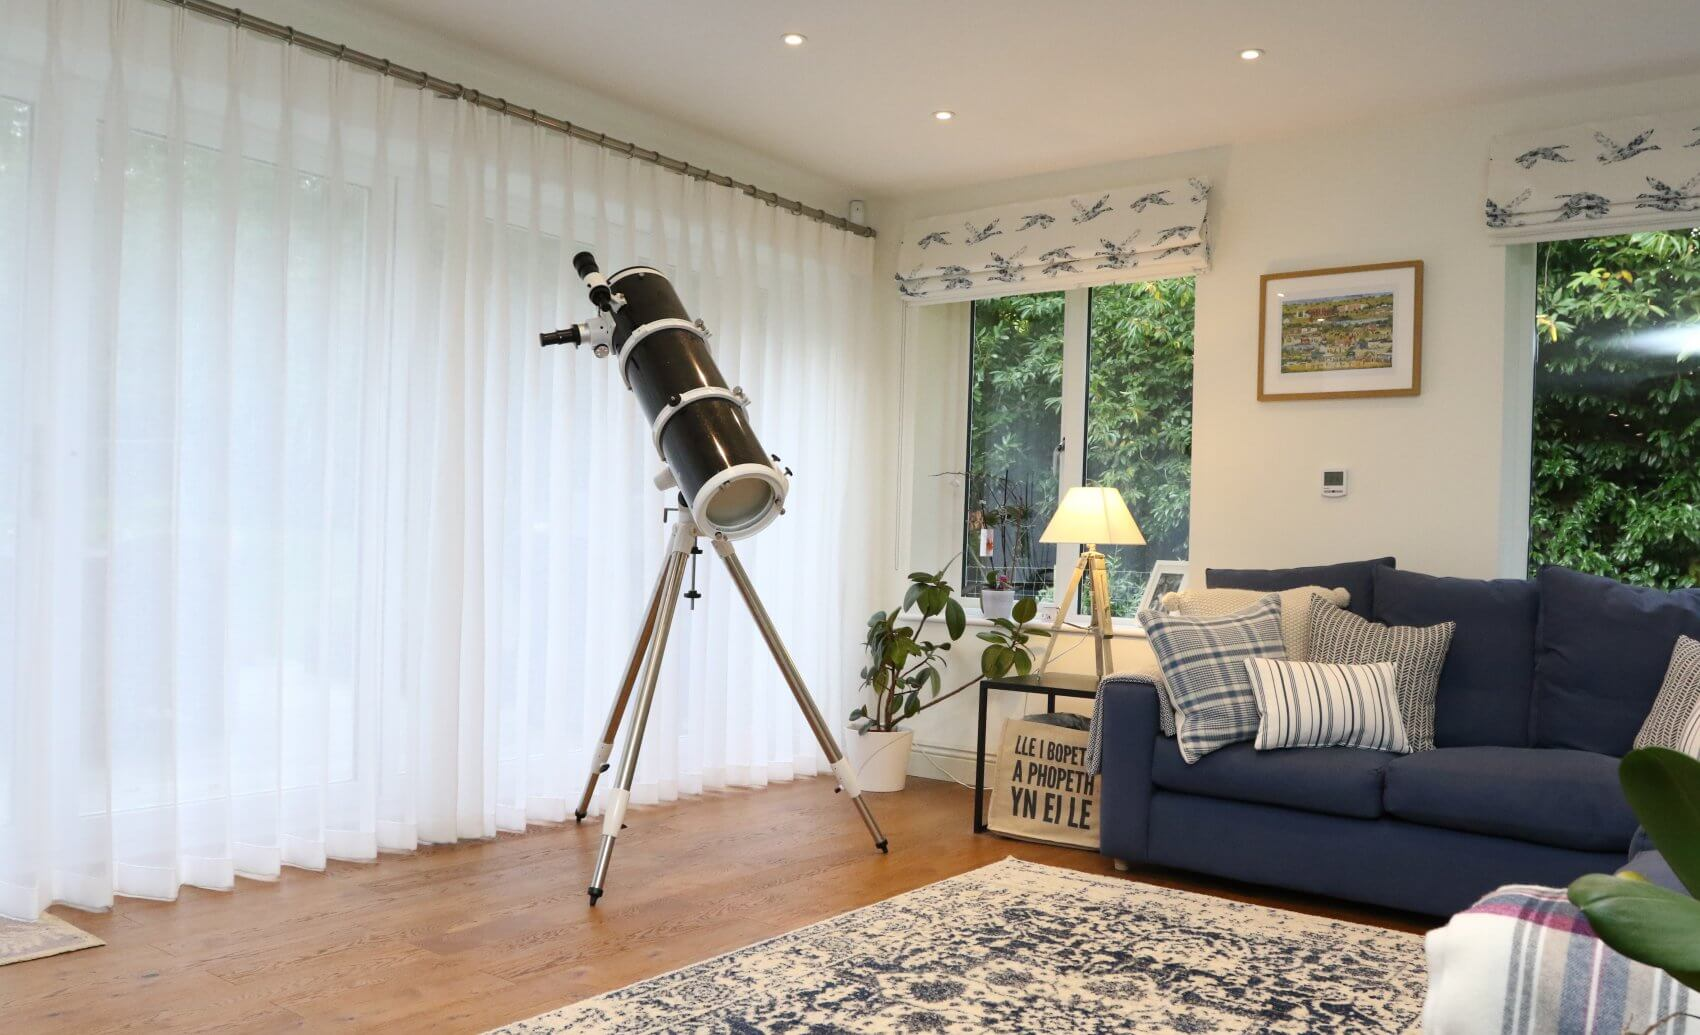 Giant Telescope | The Mustcard